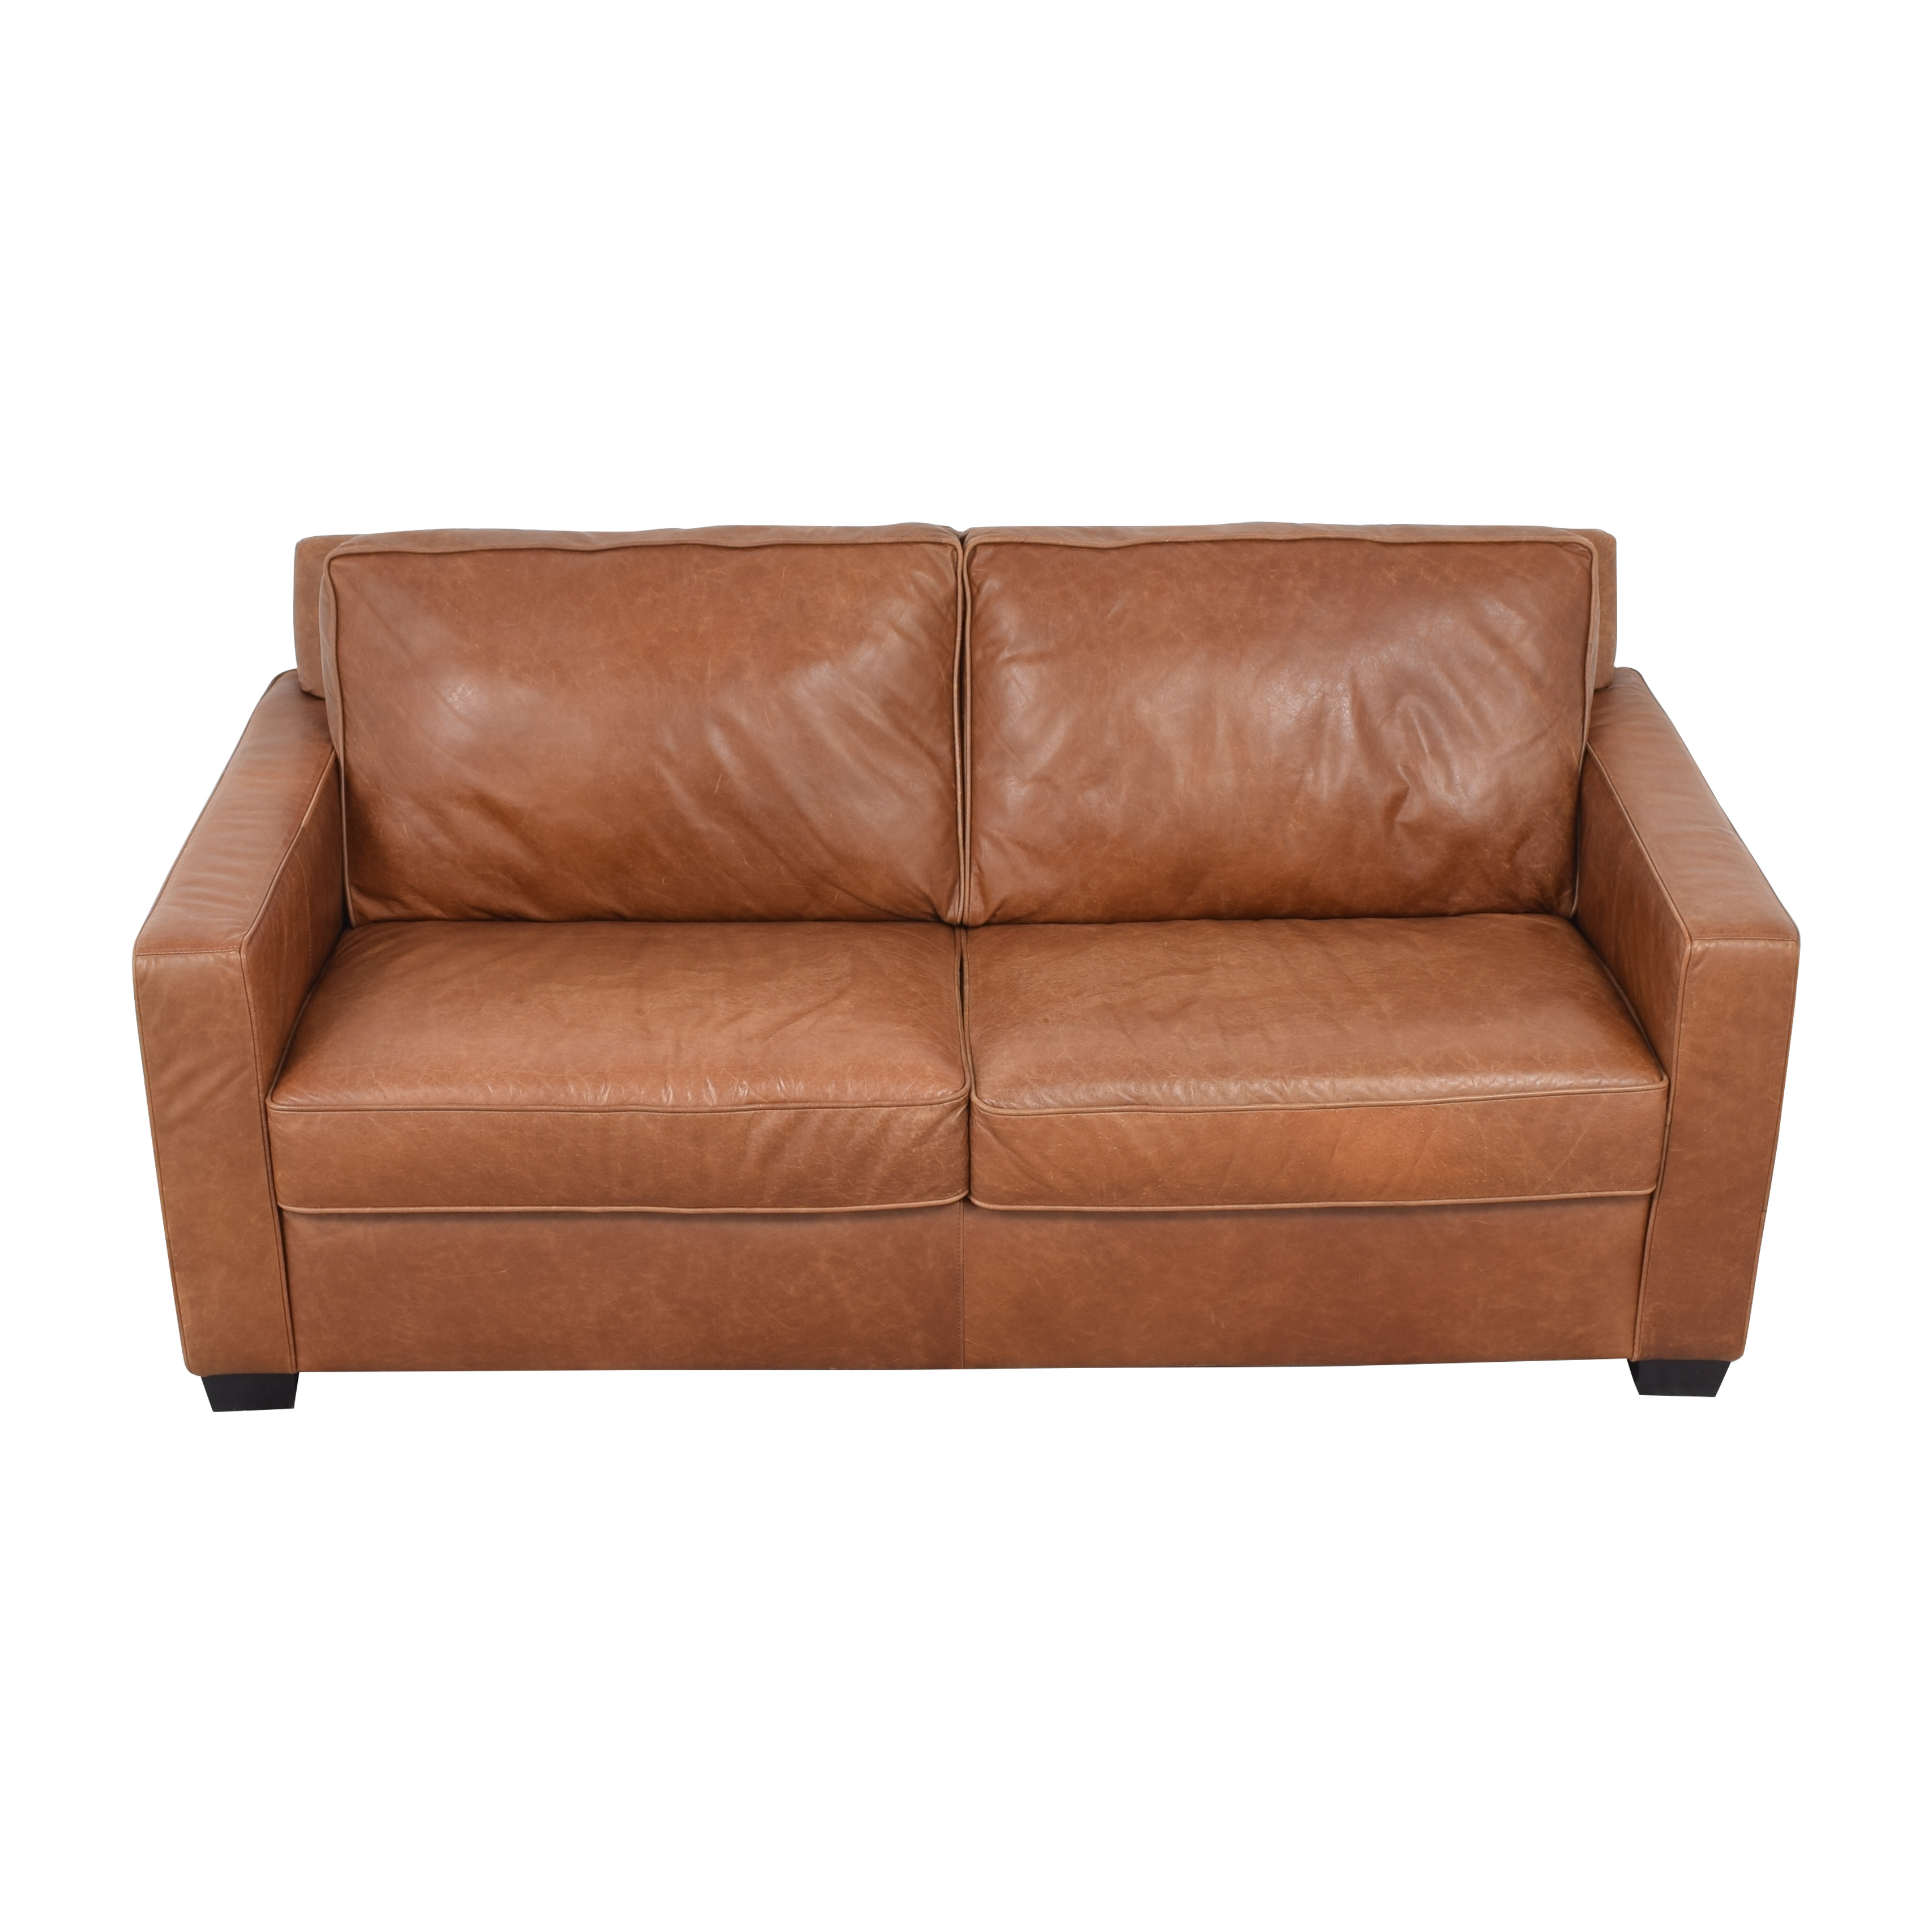 West Elm Henry Leather Sofa